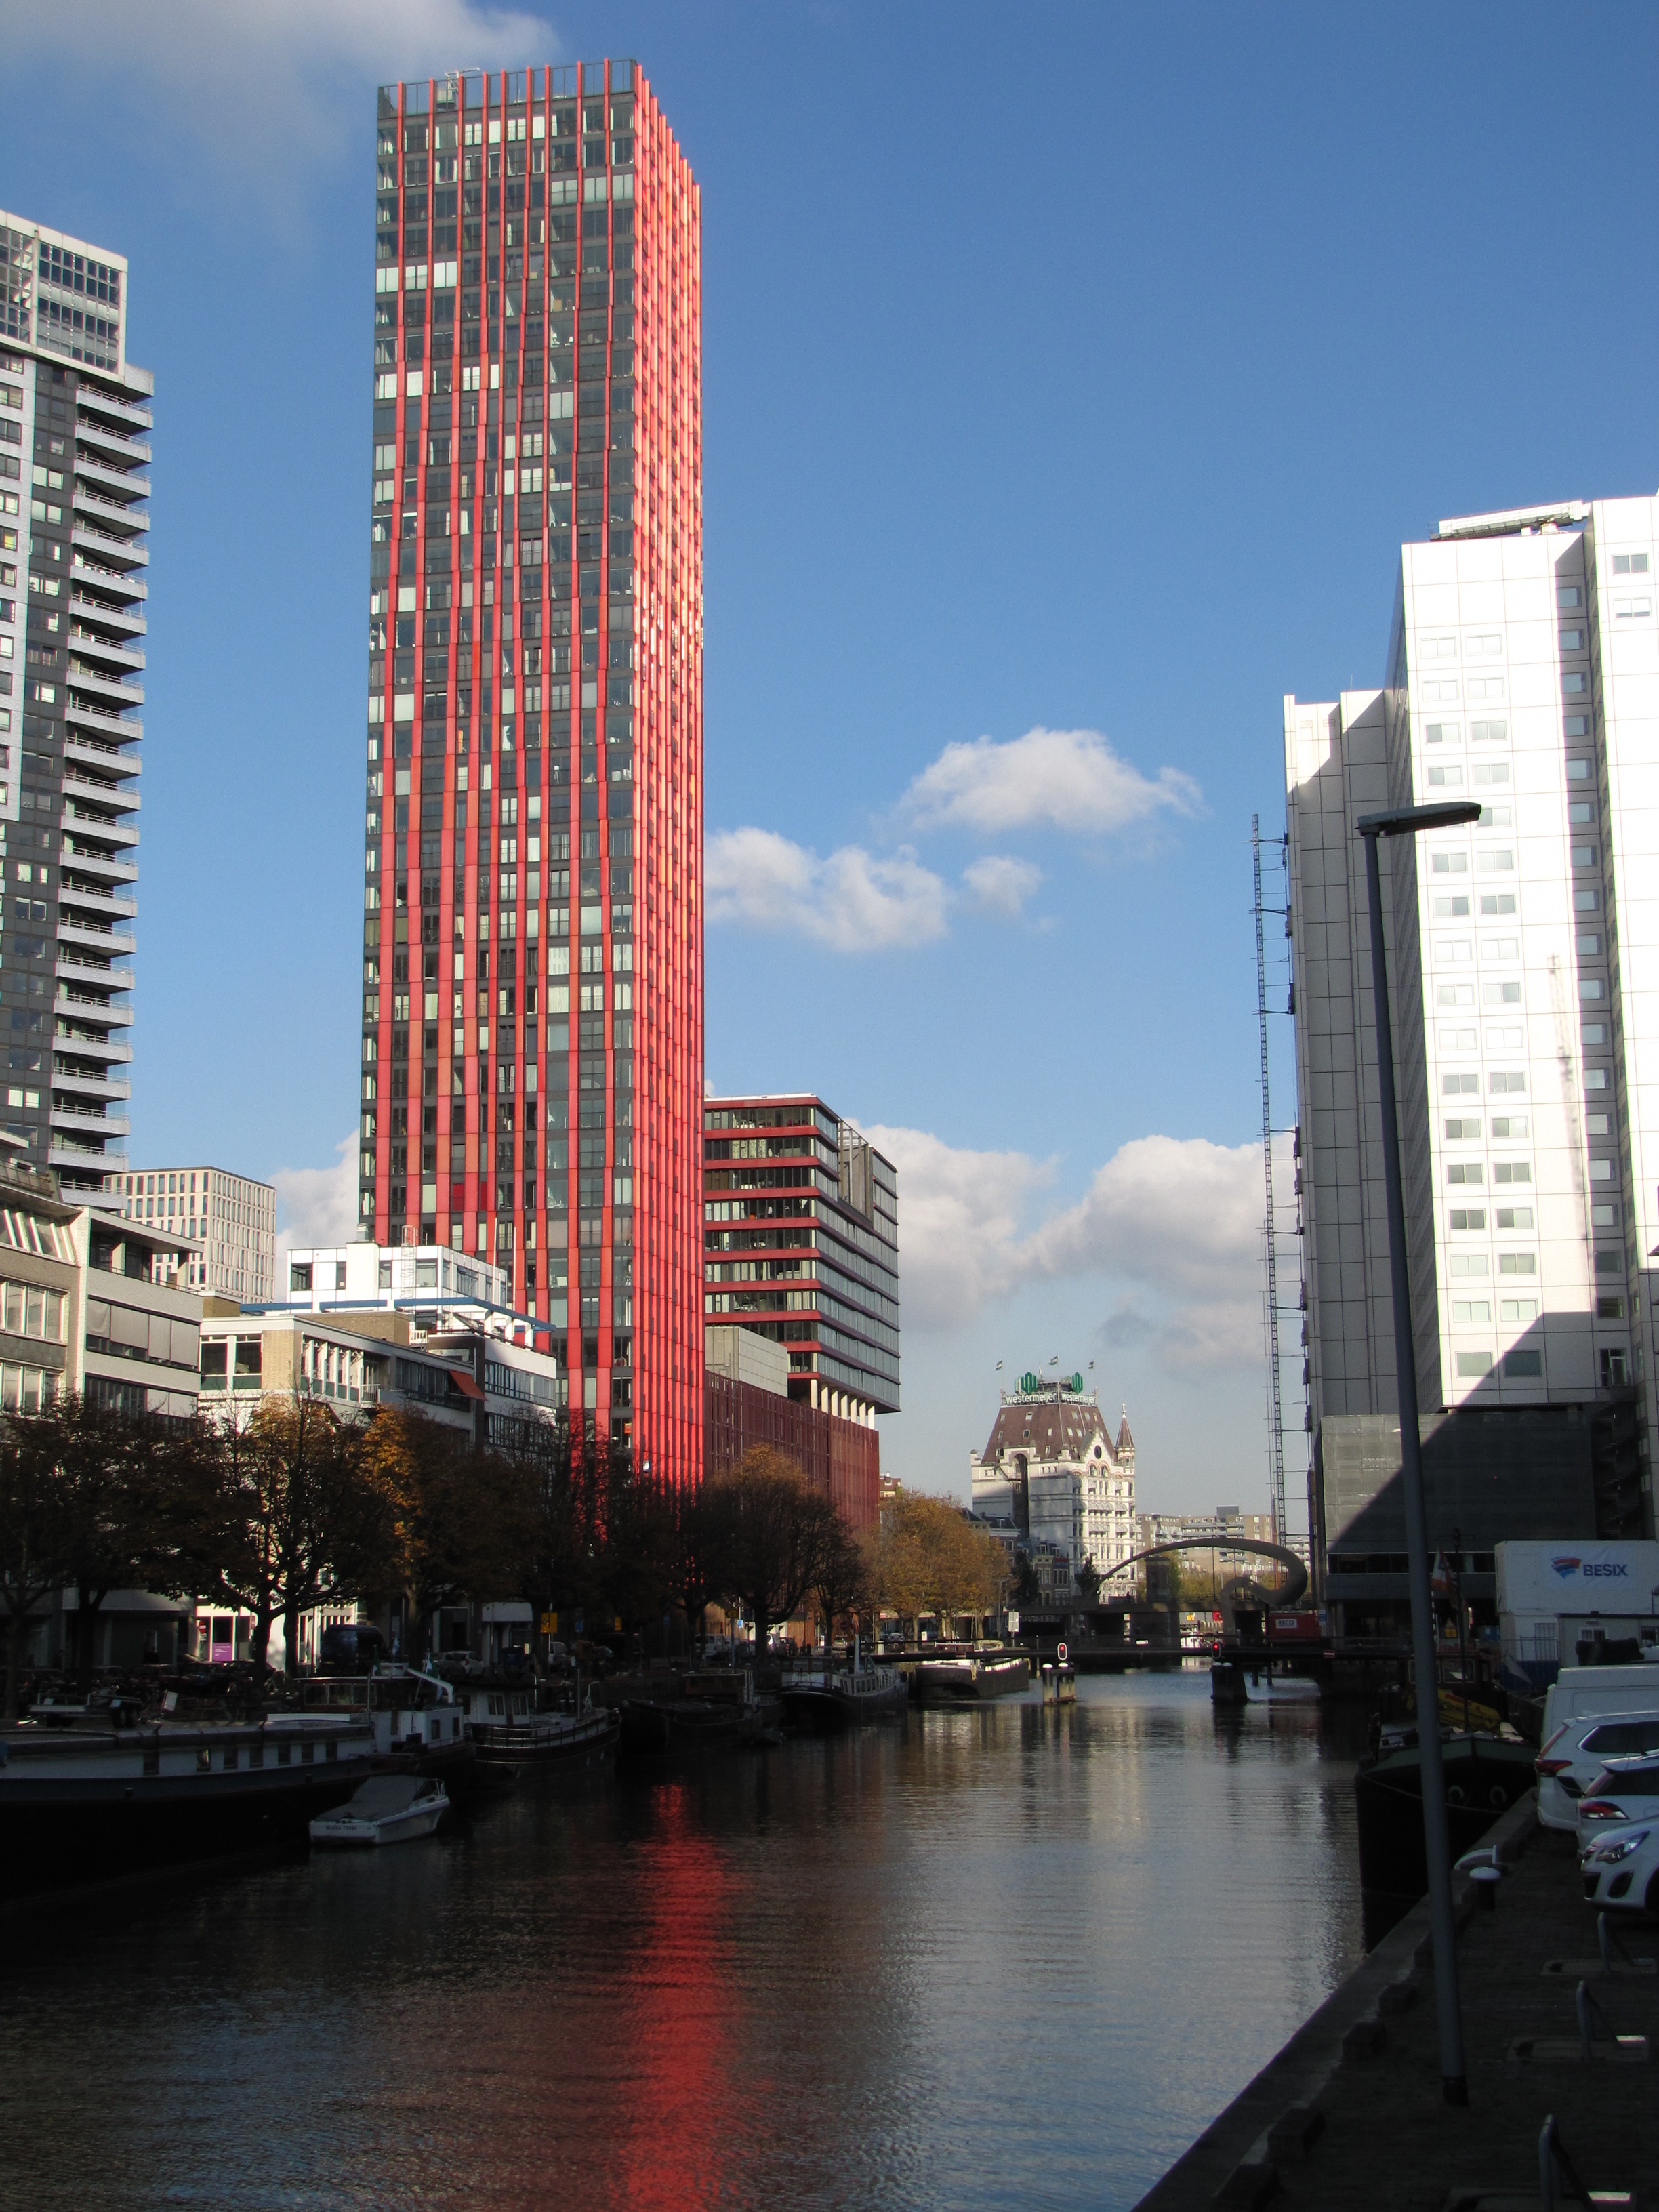 Red, apple tours at, rotterdam 's Day of Architecture fully booked